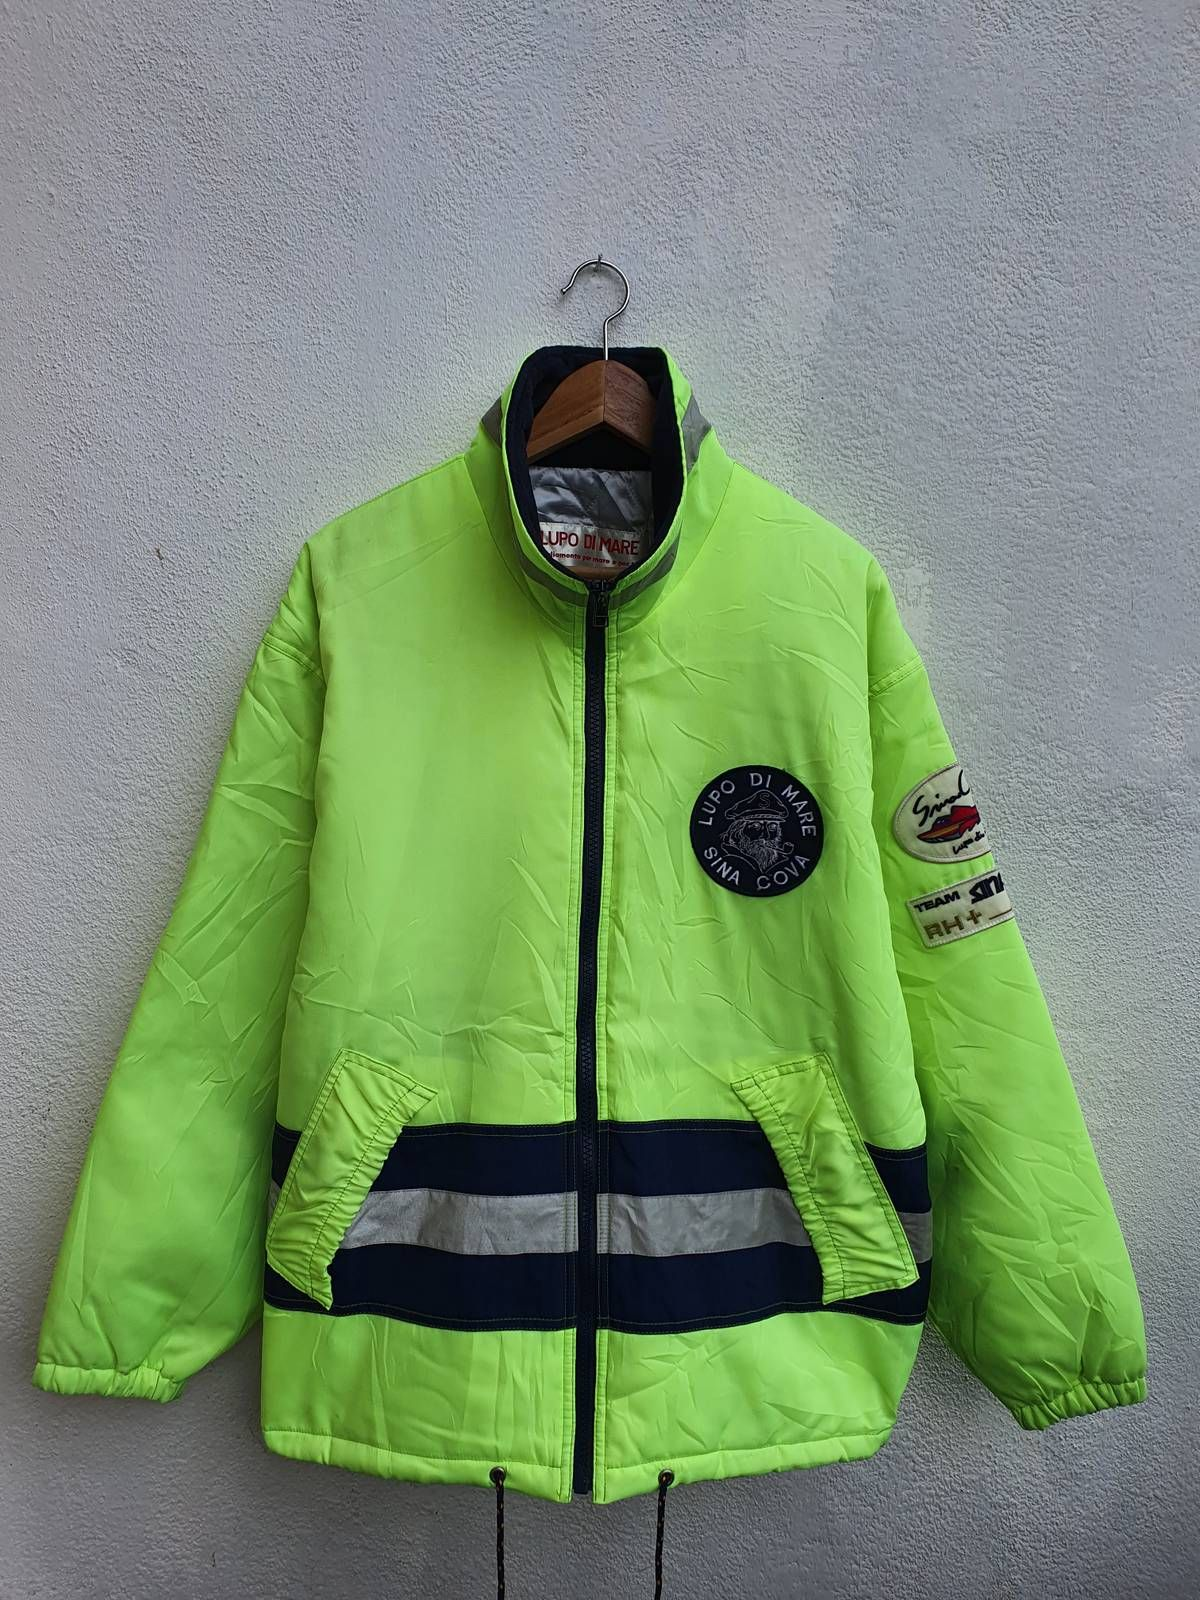 Japanese Brand Very Rare Vintage Lupo Di Mare Sina Cova Neon Rh Team Jacket Size L 261 Team Jackets Jackets Outerwear [ 1600 x 1200 Pixel ]